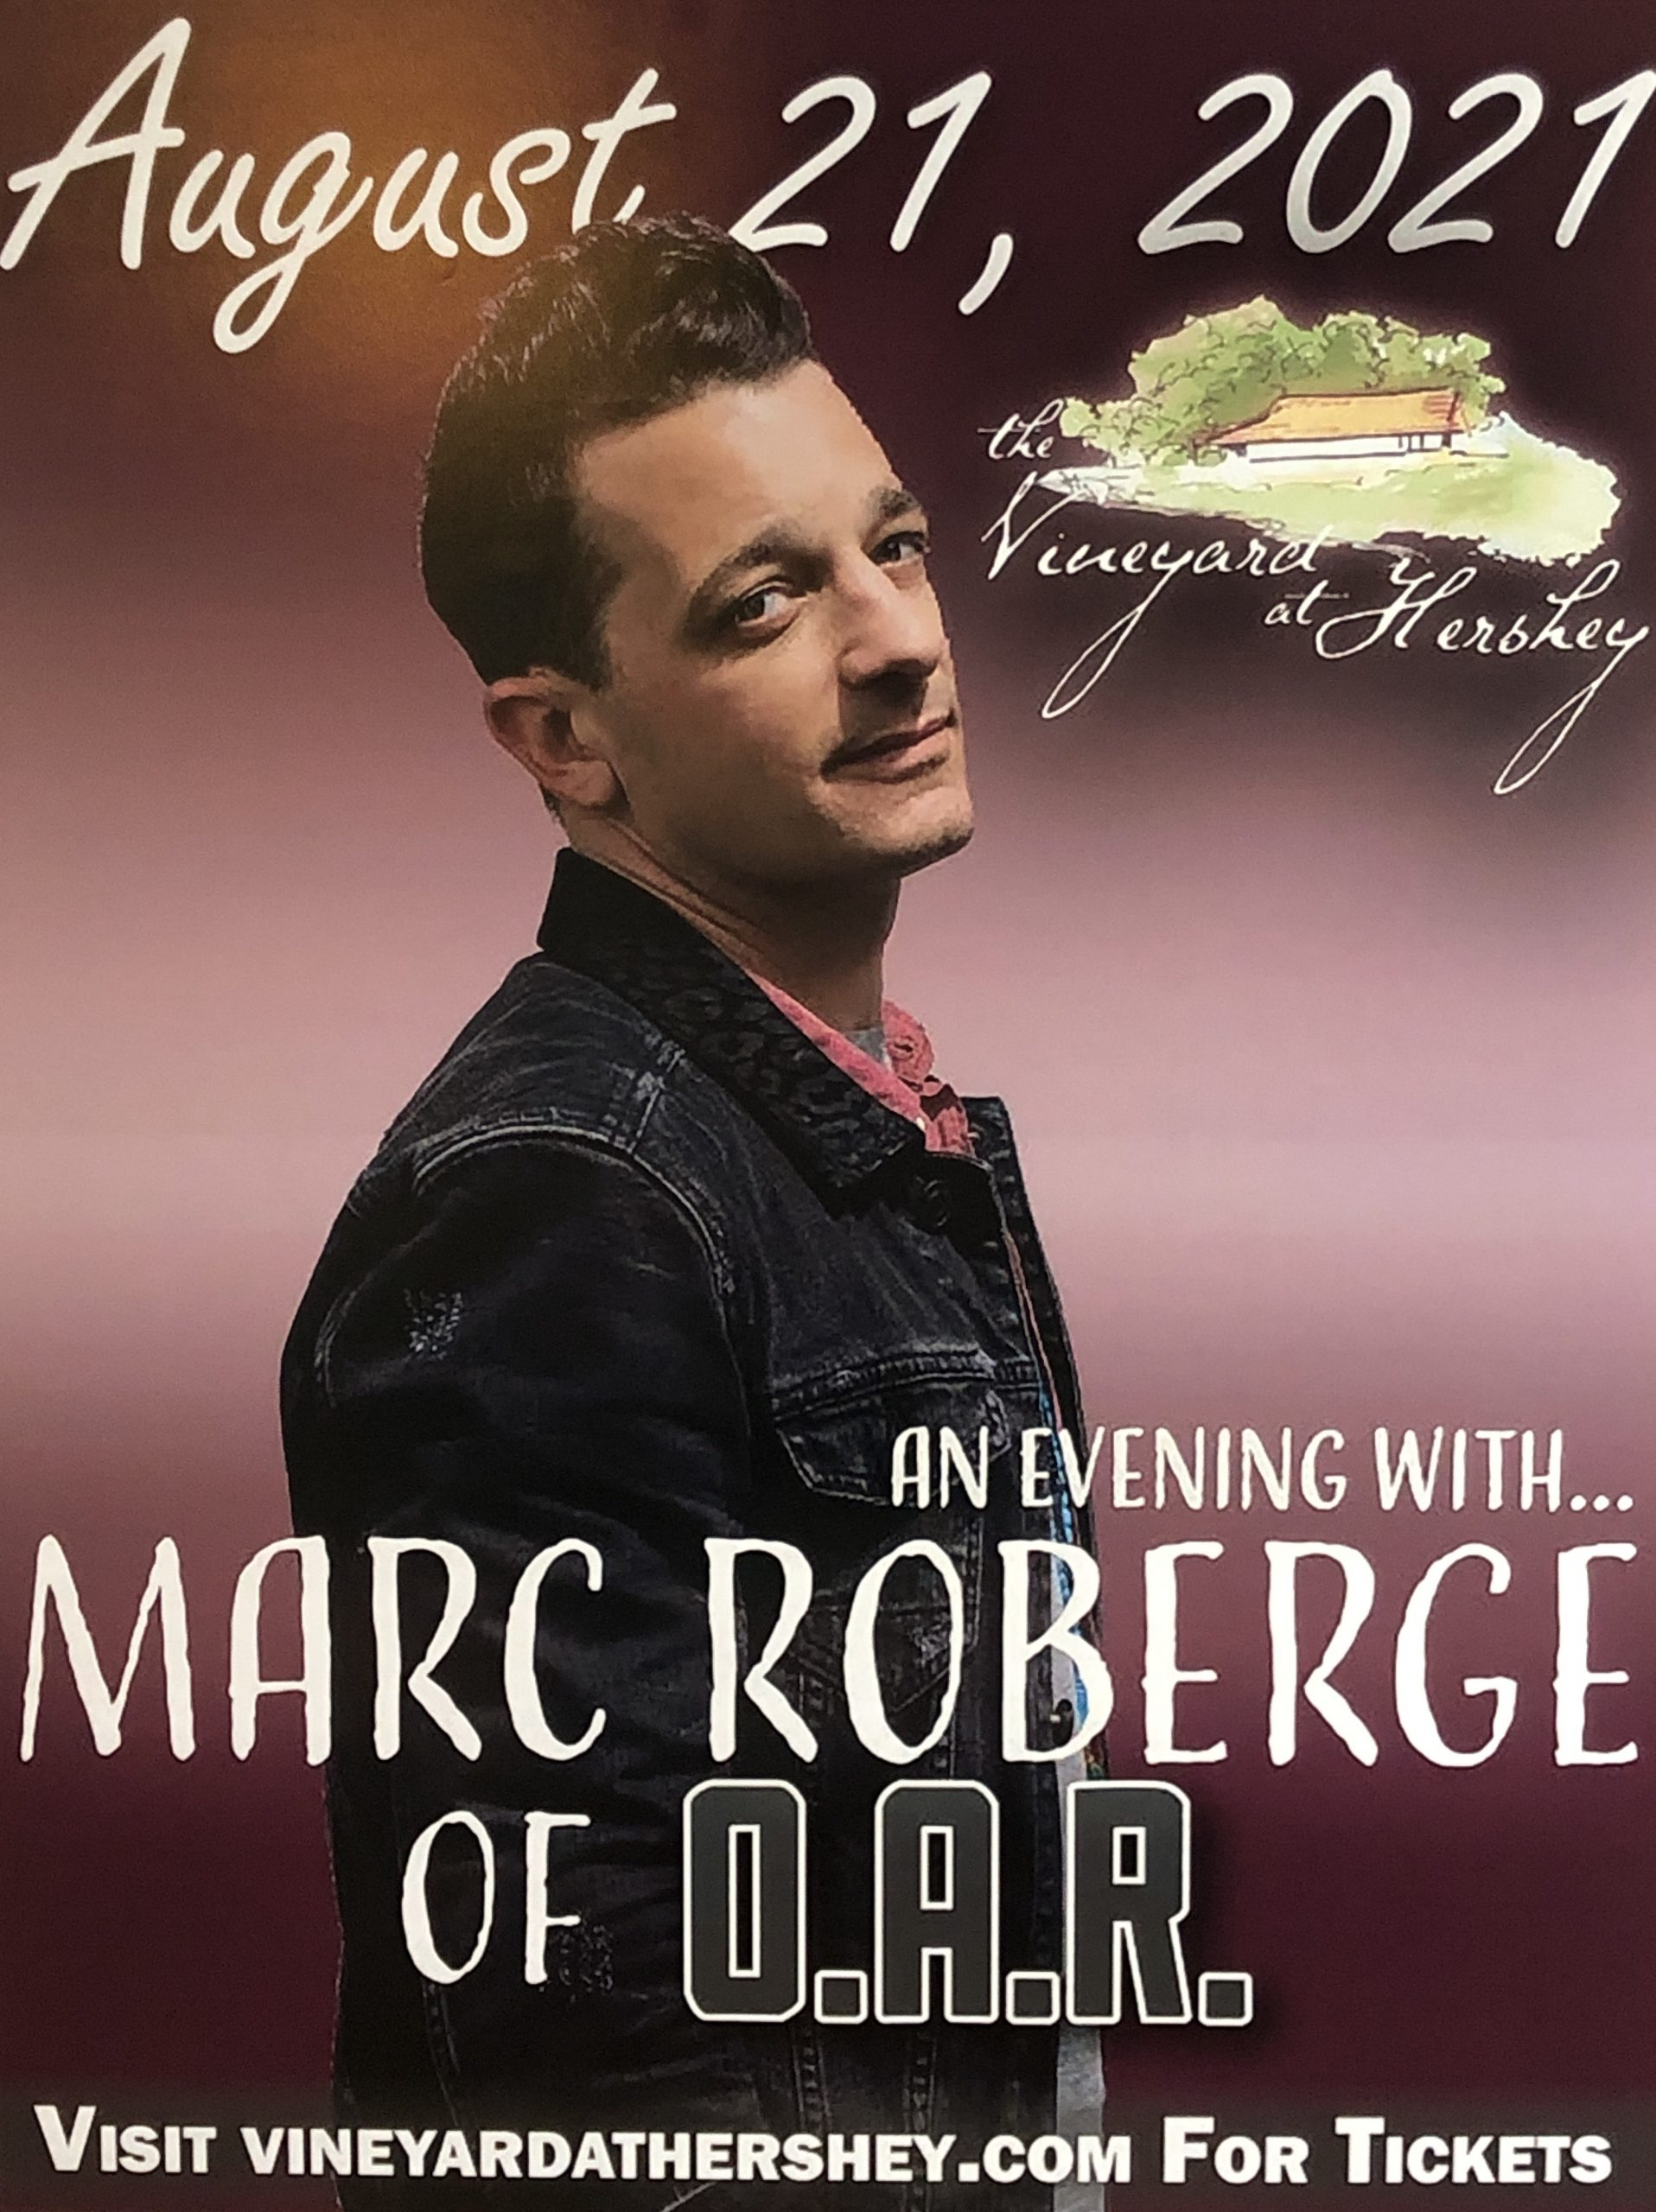 Marc Roberge of O.A.R